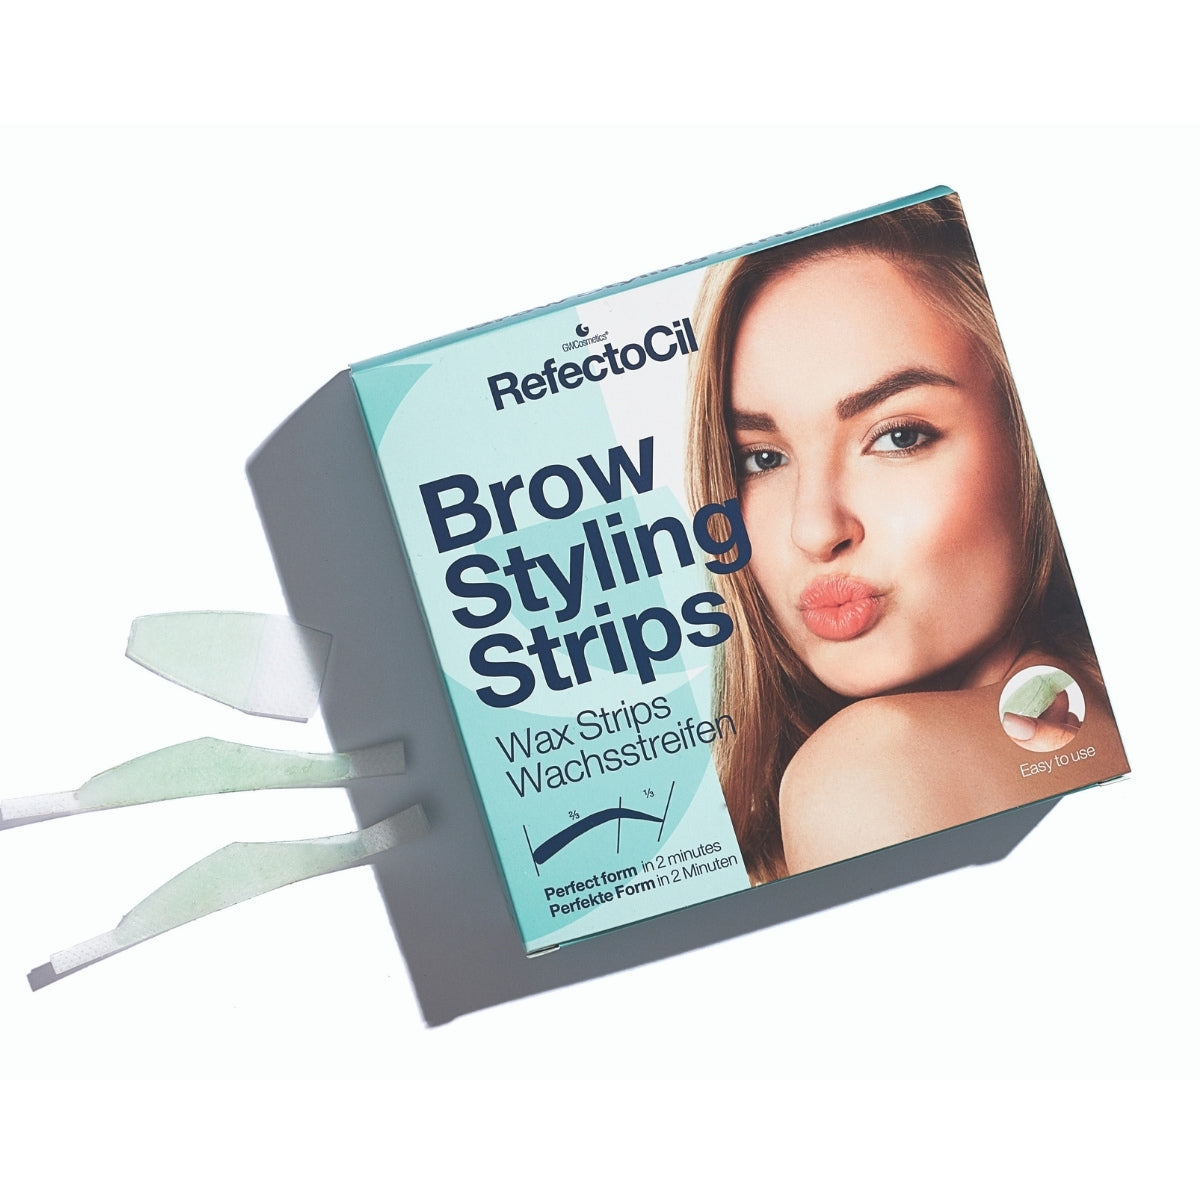 RefectoCil Wax Brow Styling Strips